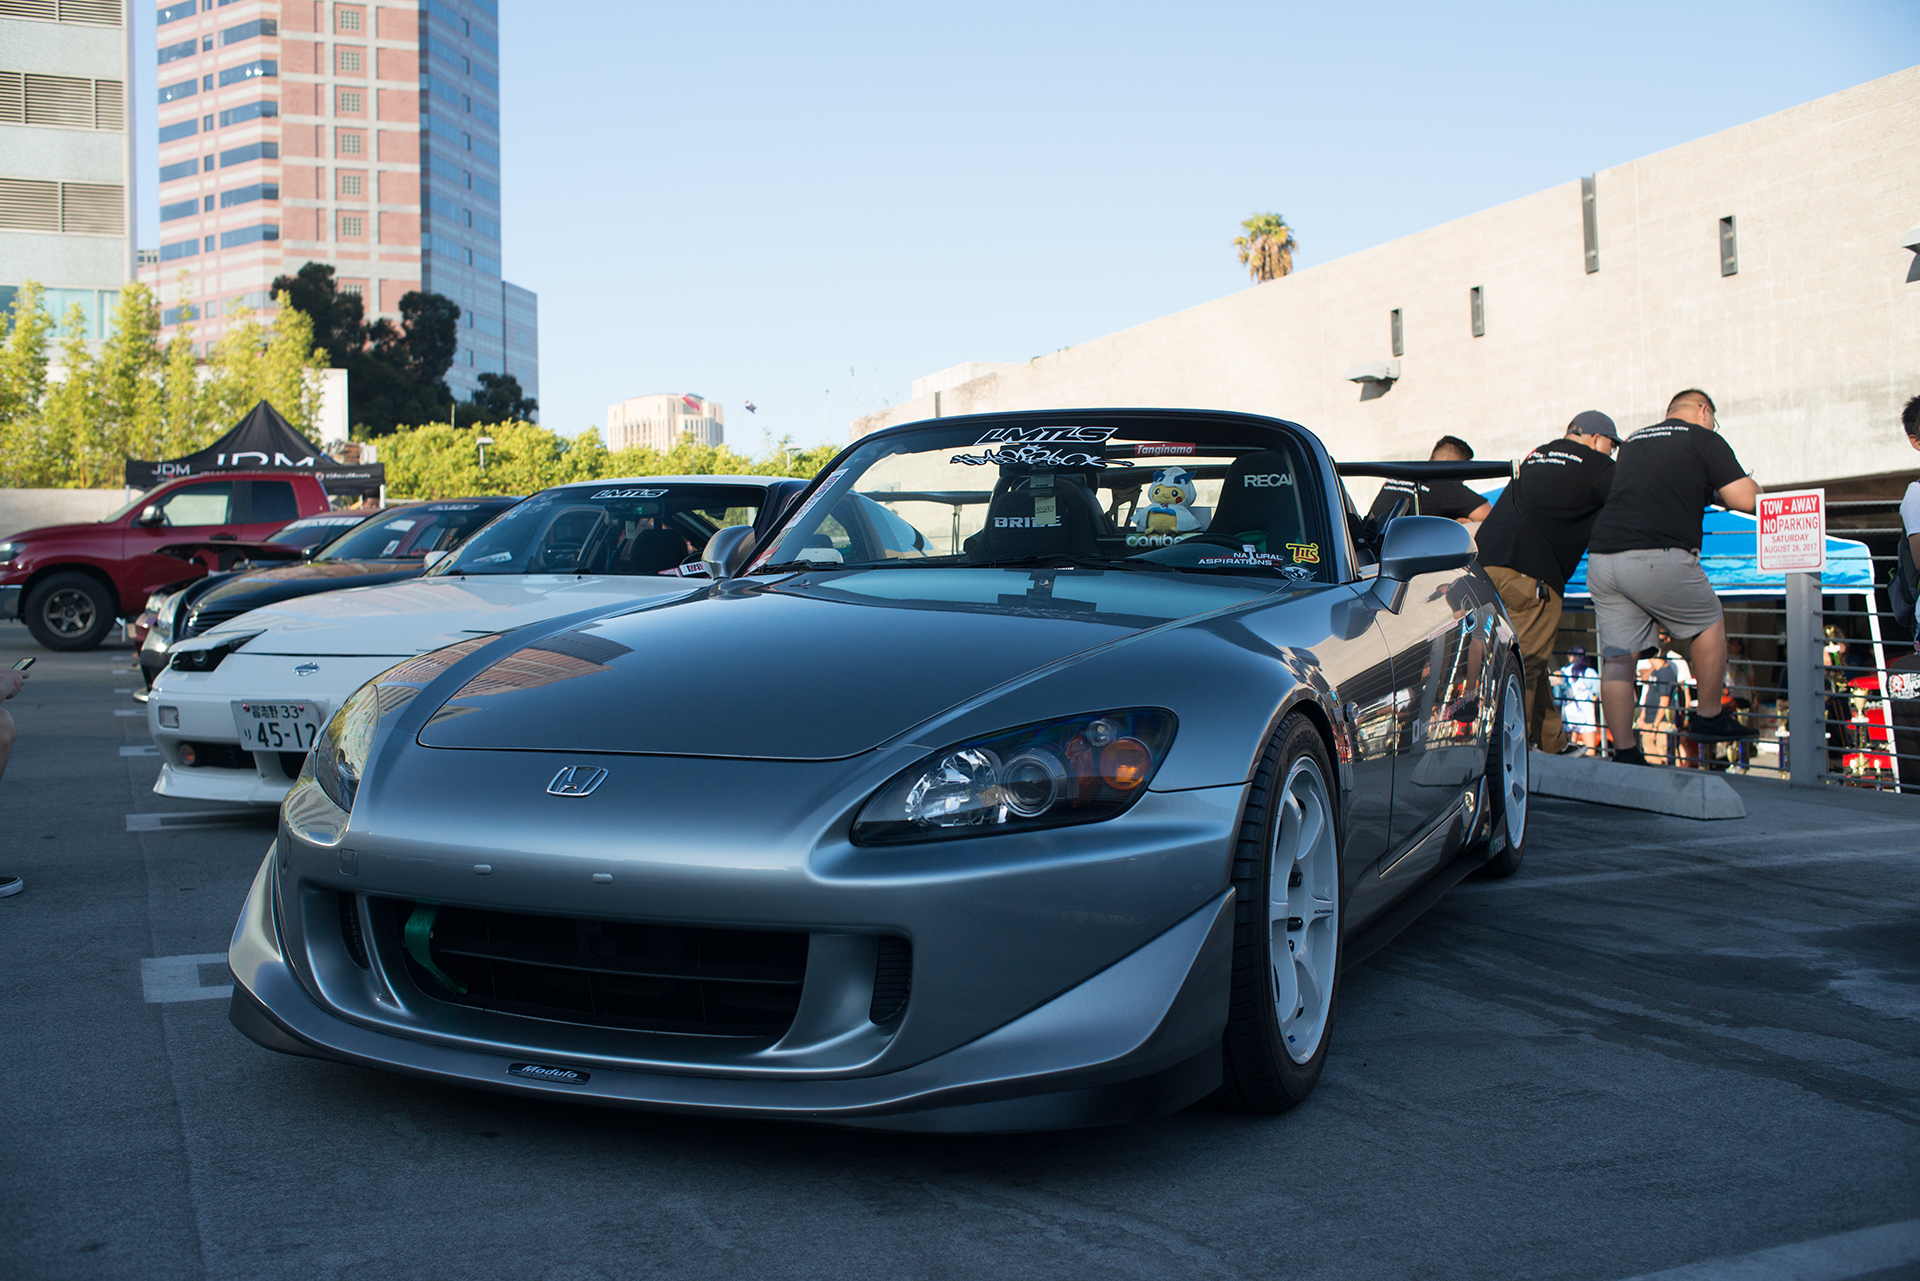 Honda S2000 at Show Off Cafe 2017